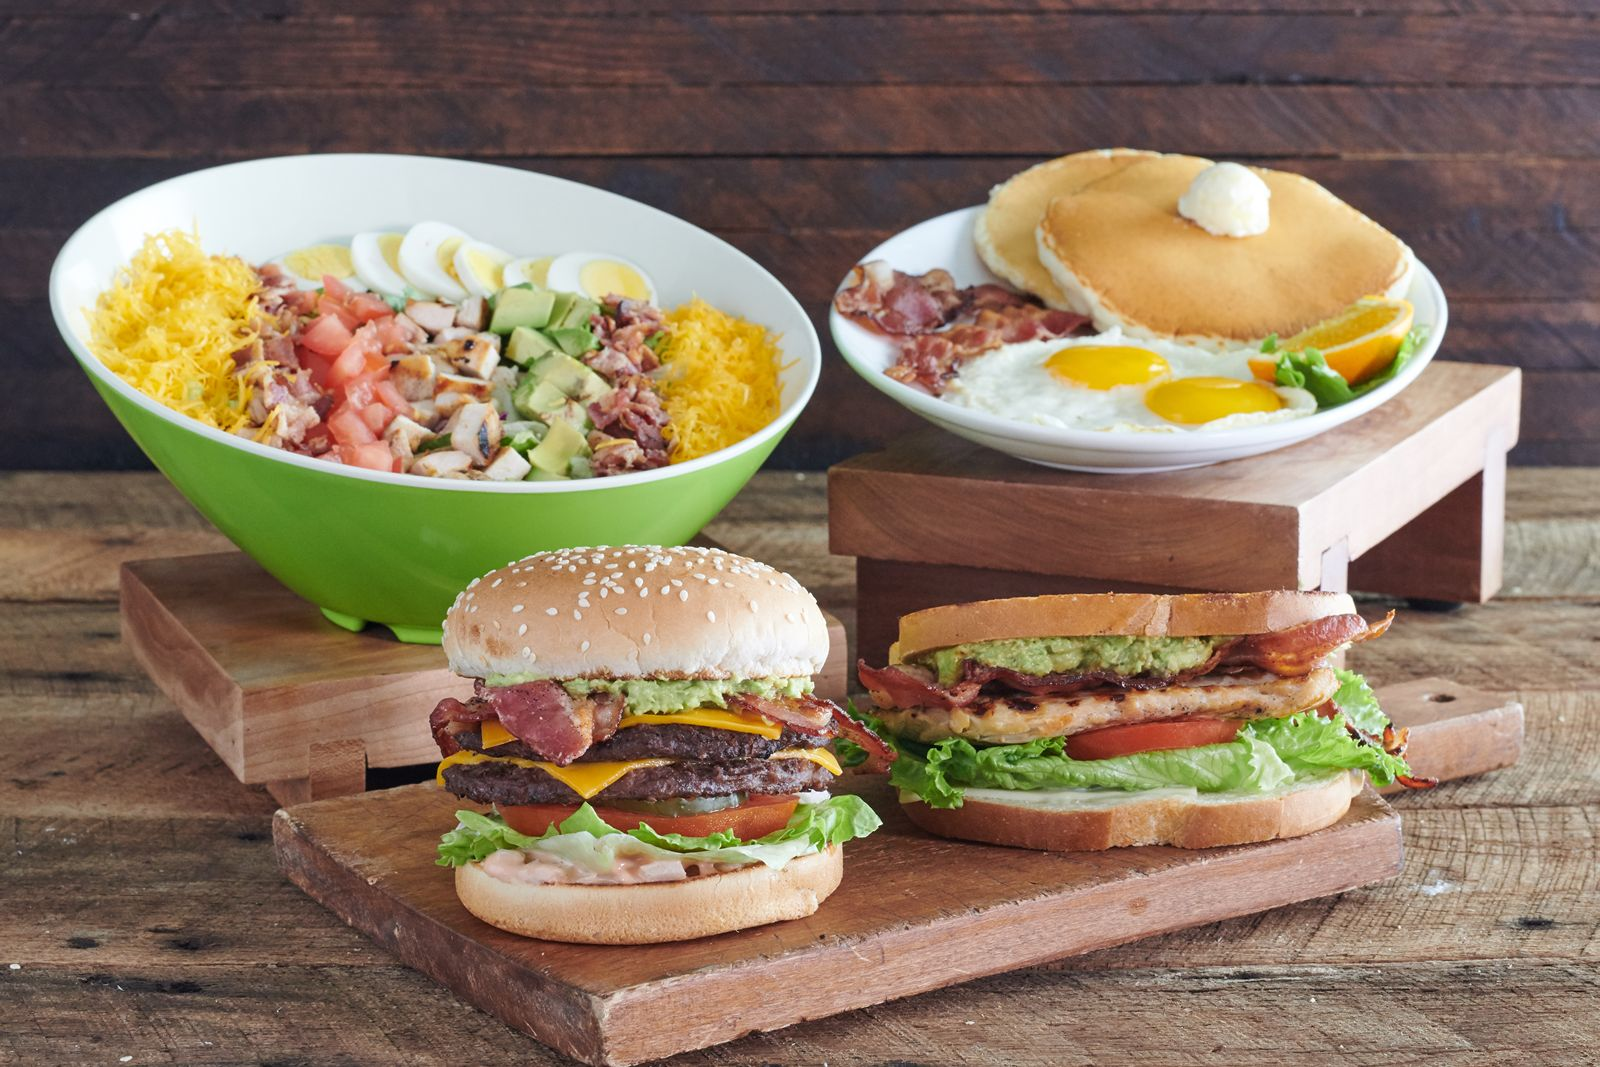 Farmer Boys, the fast casual concept known for its award winning burgers and exceptional service, has opened doors in Gilbert, Arizona within the new City Gate Marketplace.